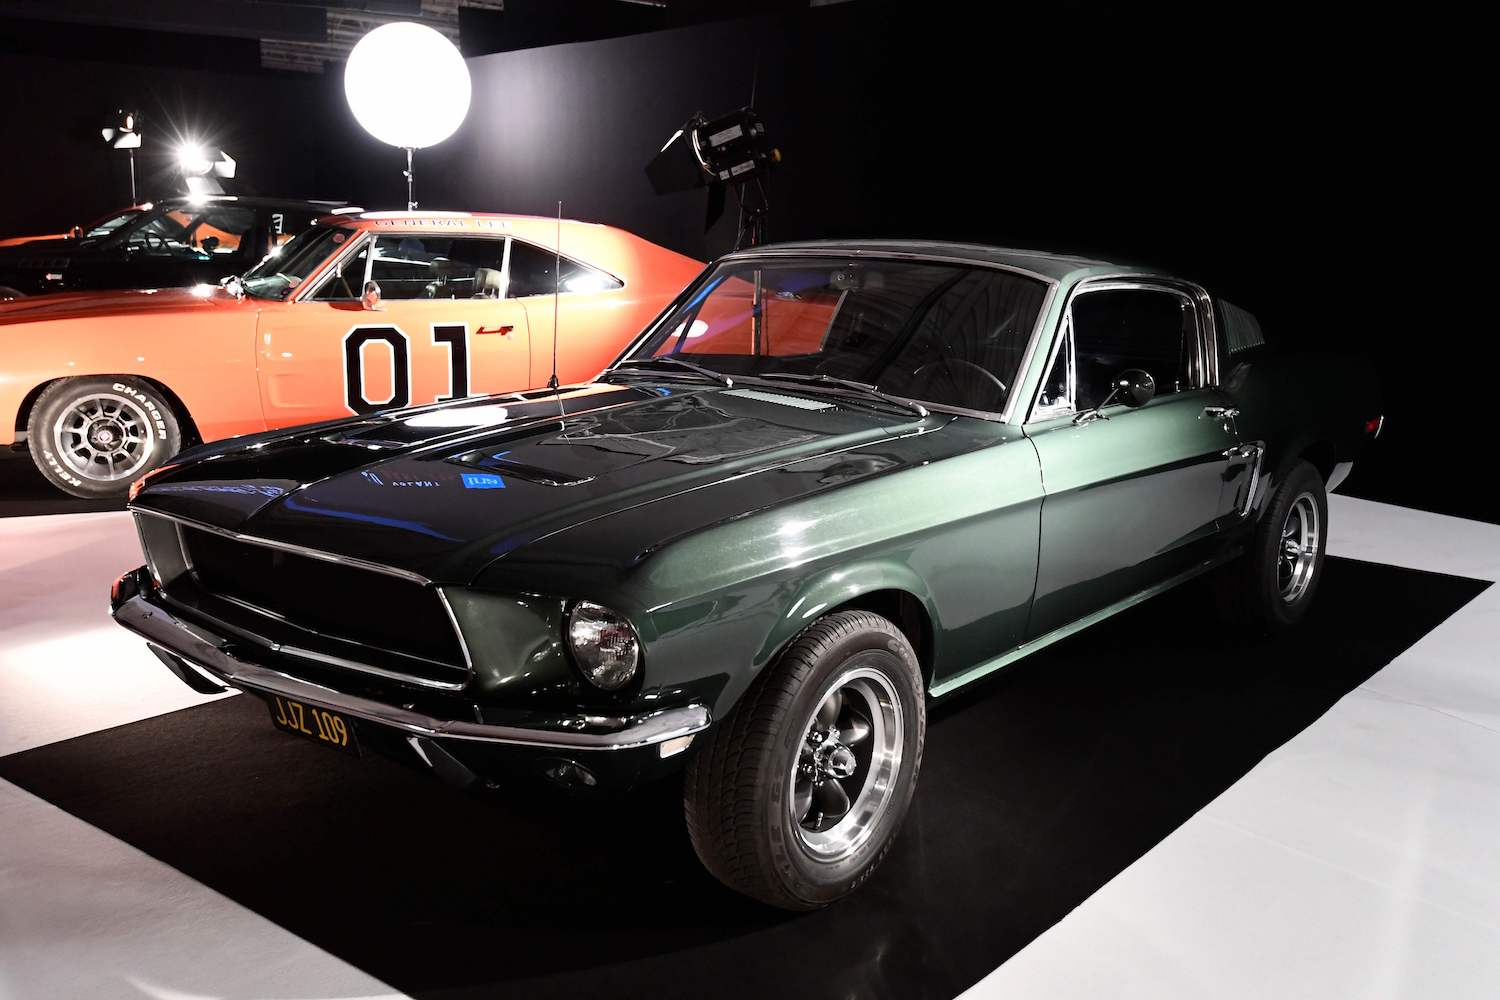 The 1968 Ford Mustang GT 390 car used in the Steve McQueen film Bullitt is seen  during the Paris Motor Show in 2016. (AFP Photo)